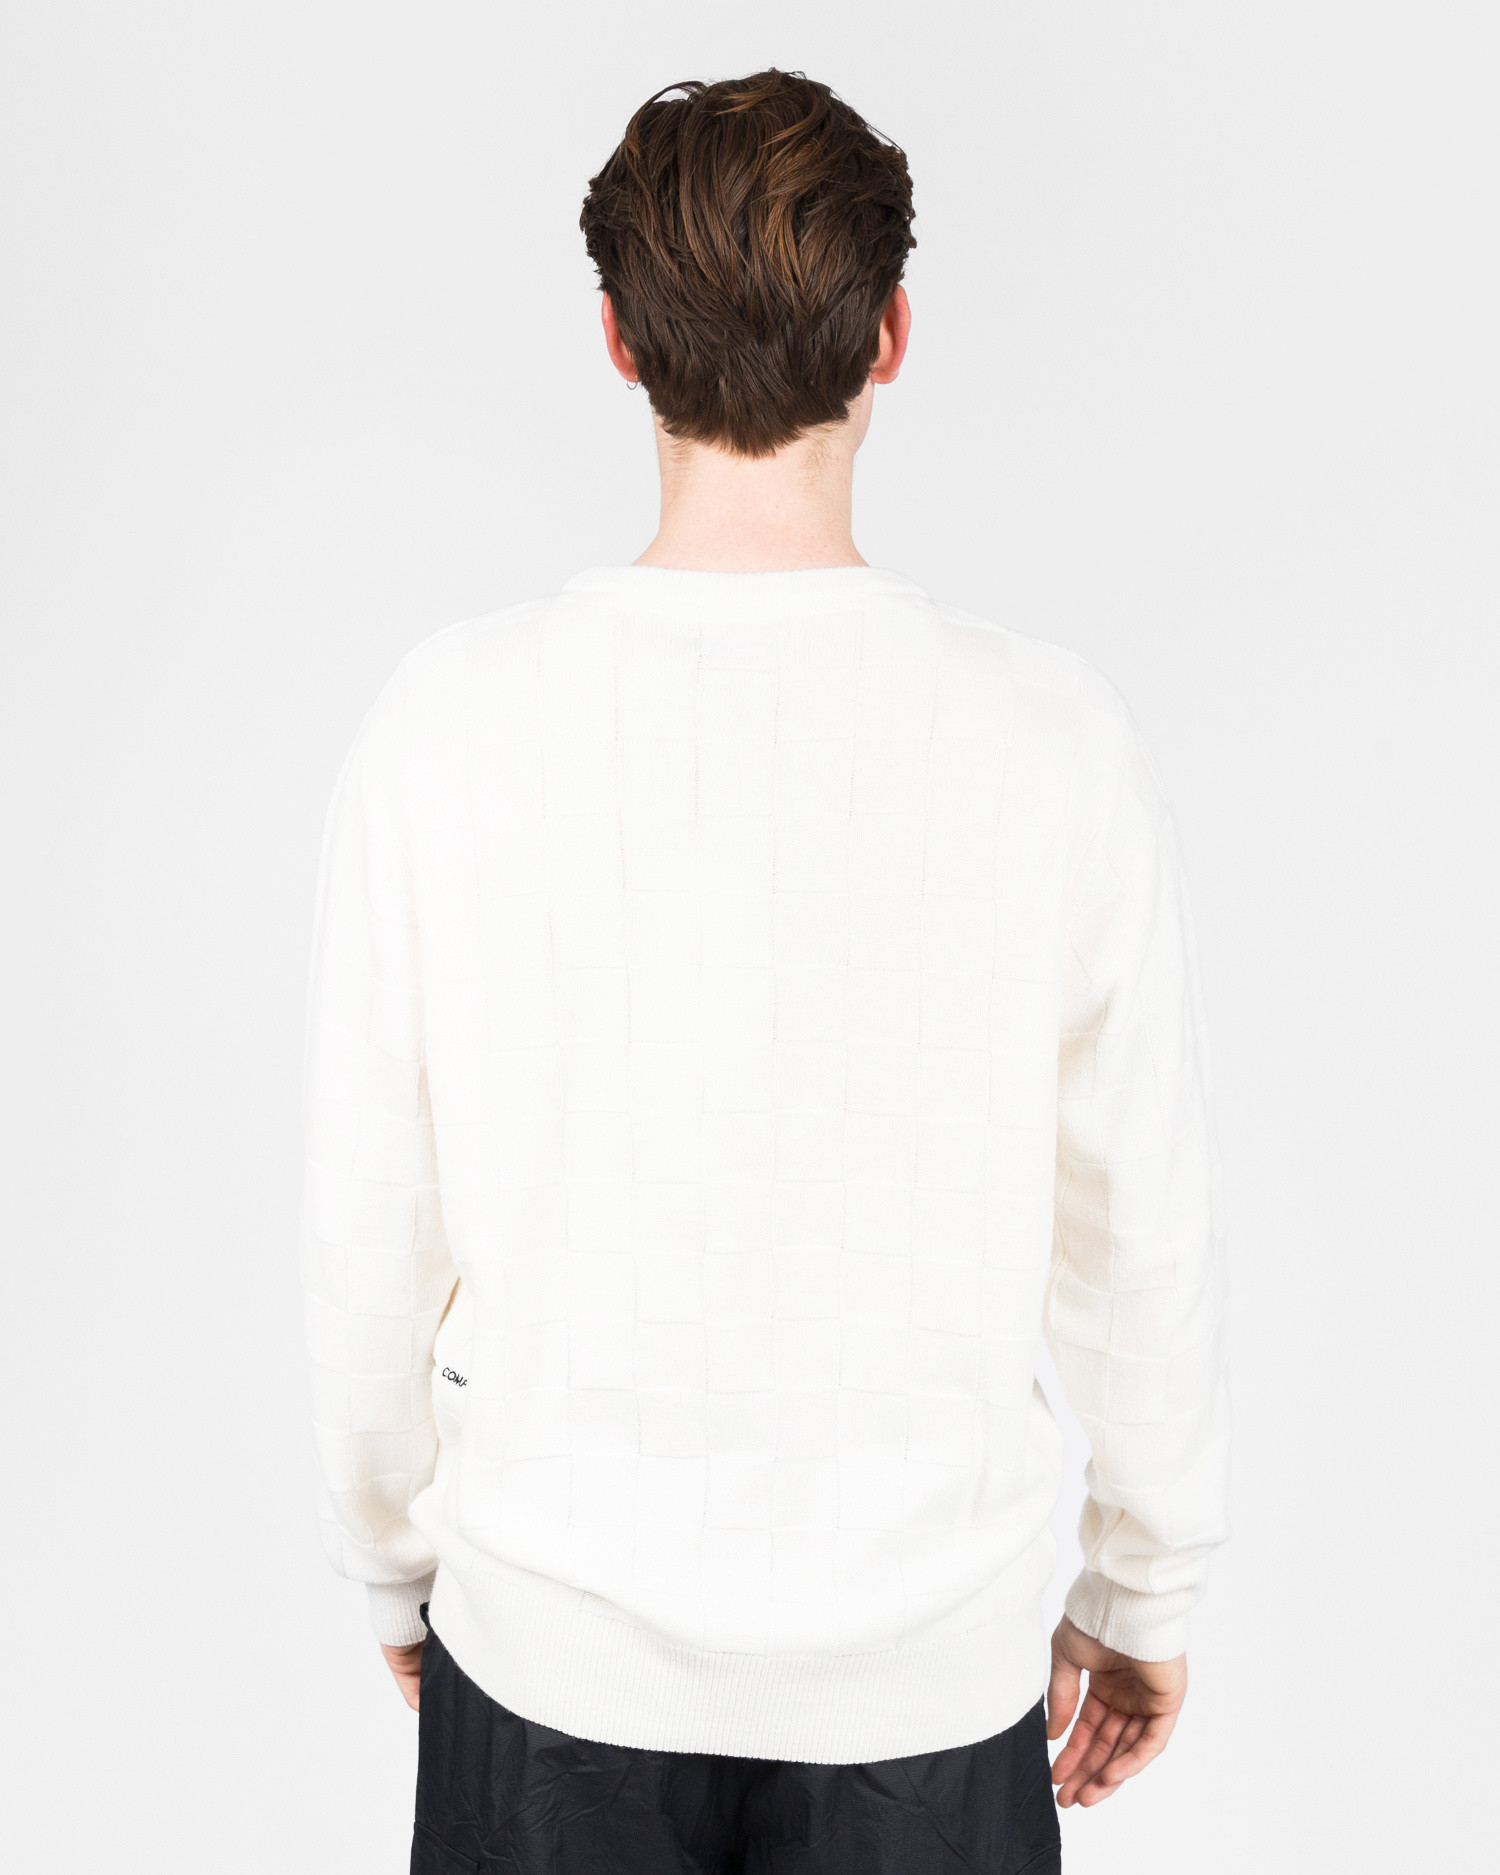 Pop Trading Co checked panel knit off white